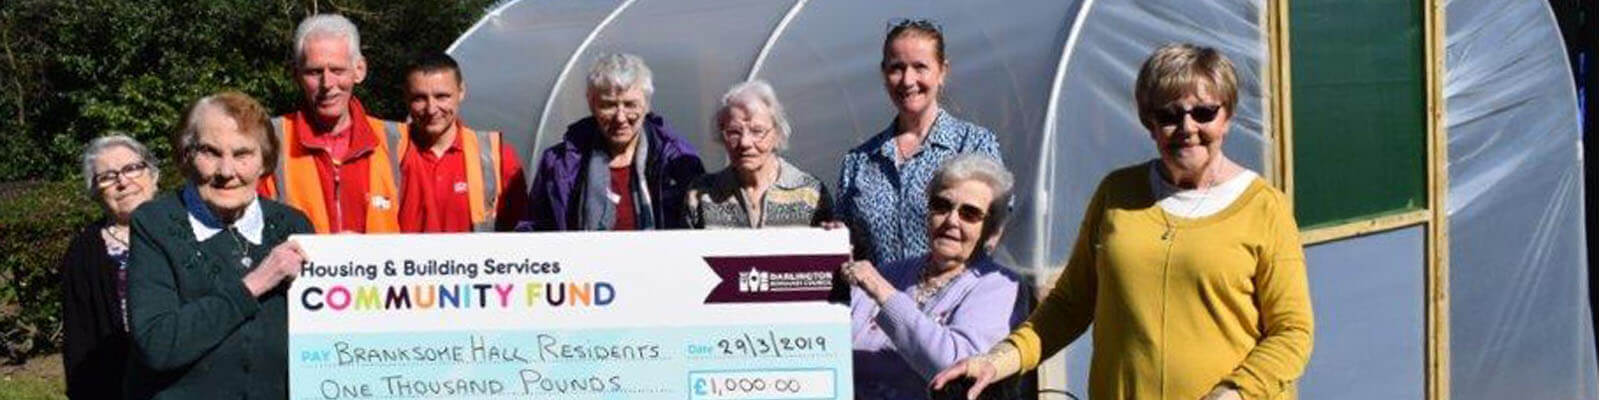 Residents receiving a community fund cheque